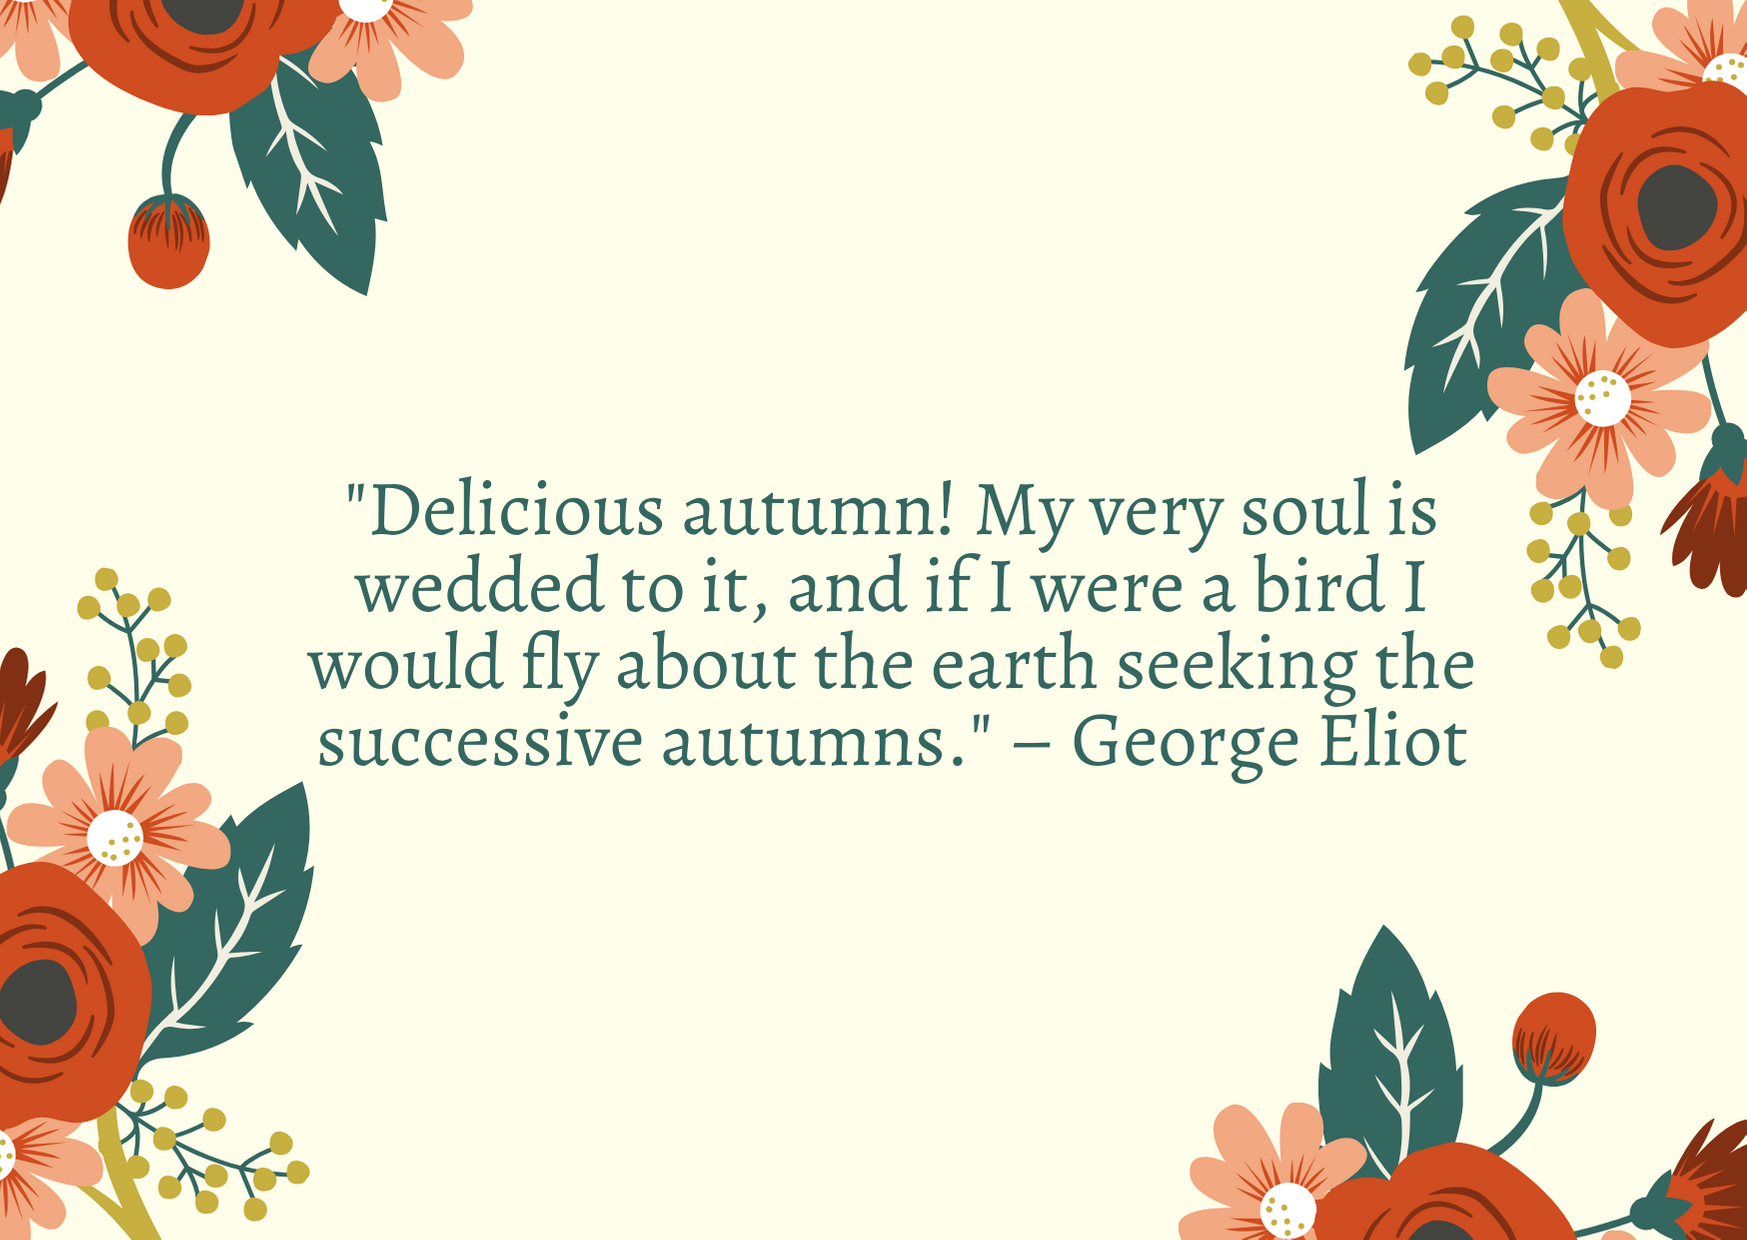 """Delicious autumn! My very soul is wedded to it, and if I were a bird I would fly about the earth seeking the successive autumns."" – George Eliot"